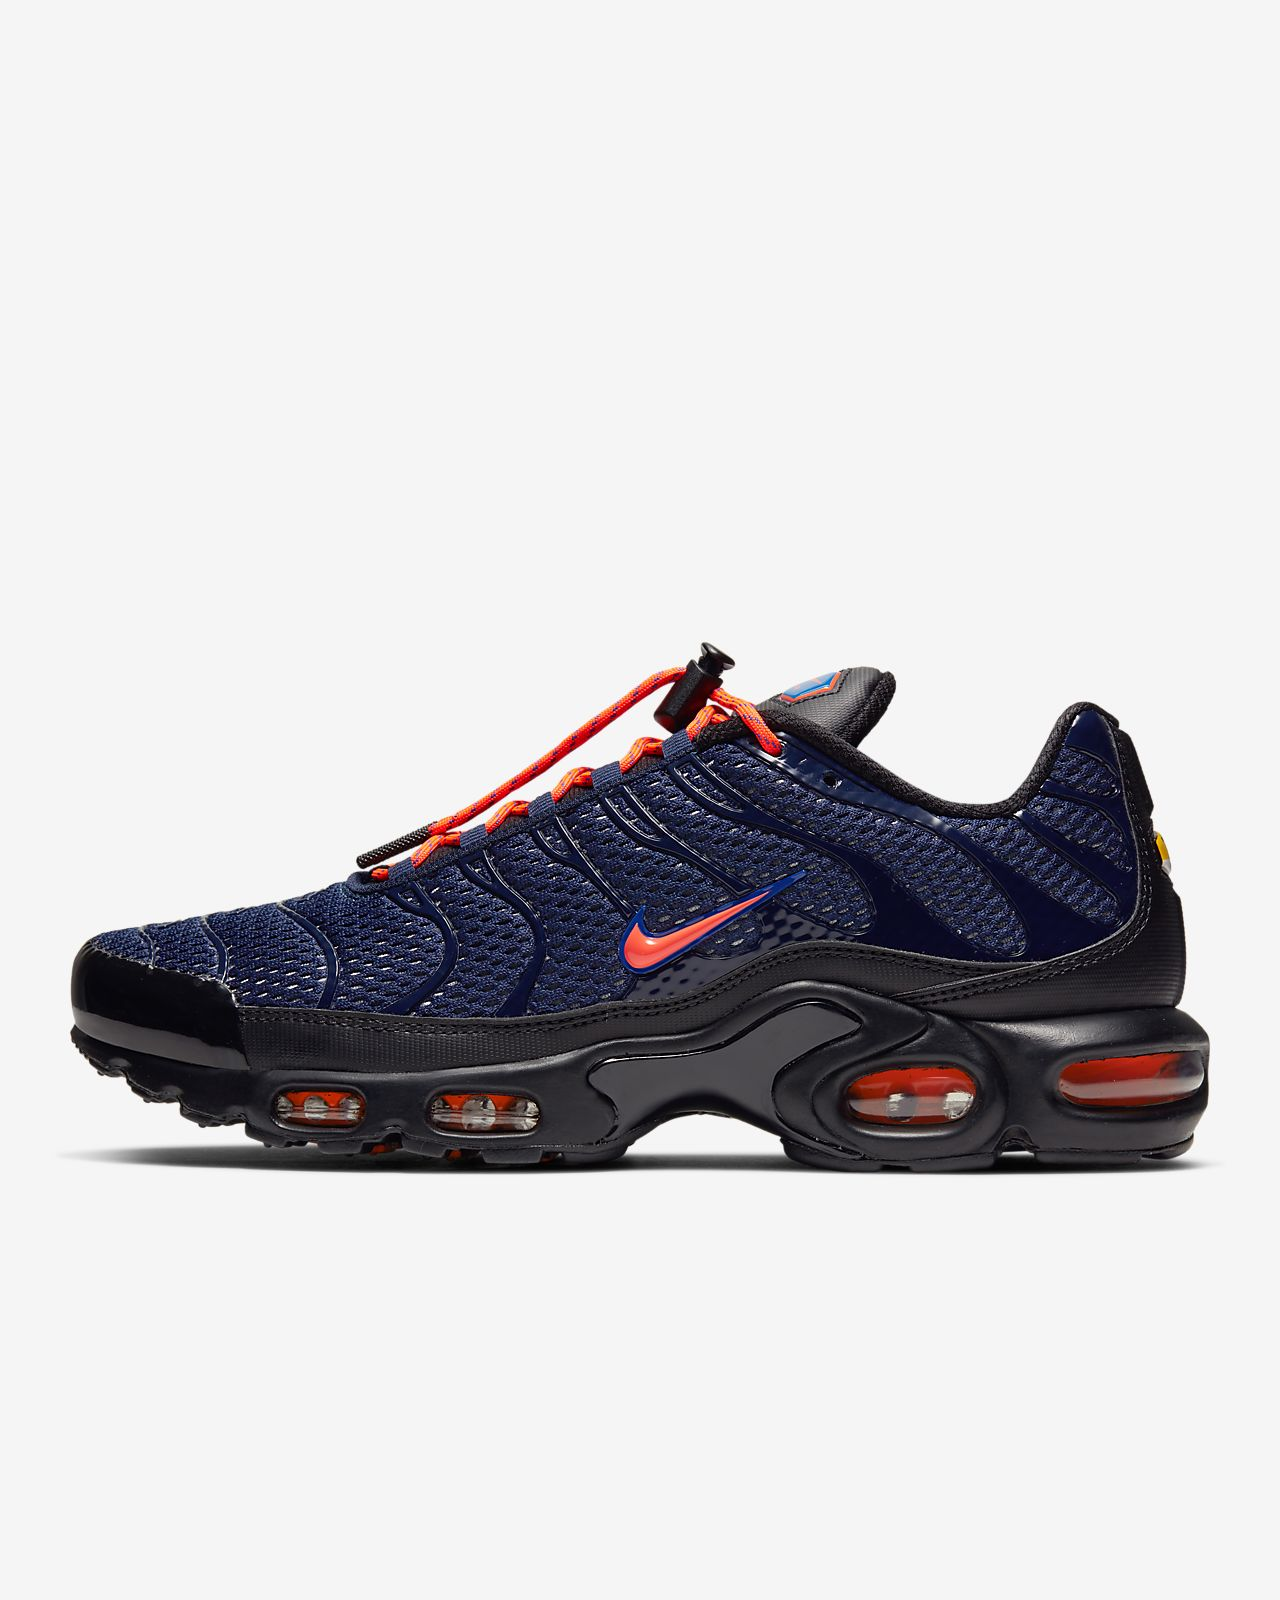 Bestelle Coole Air Max 90 Schuhe. AT